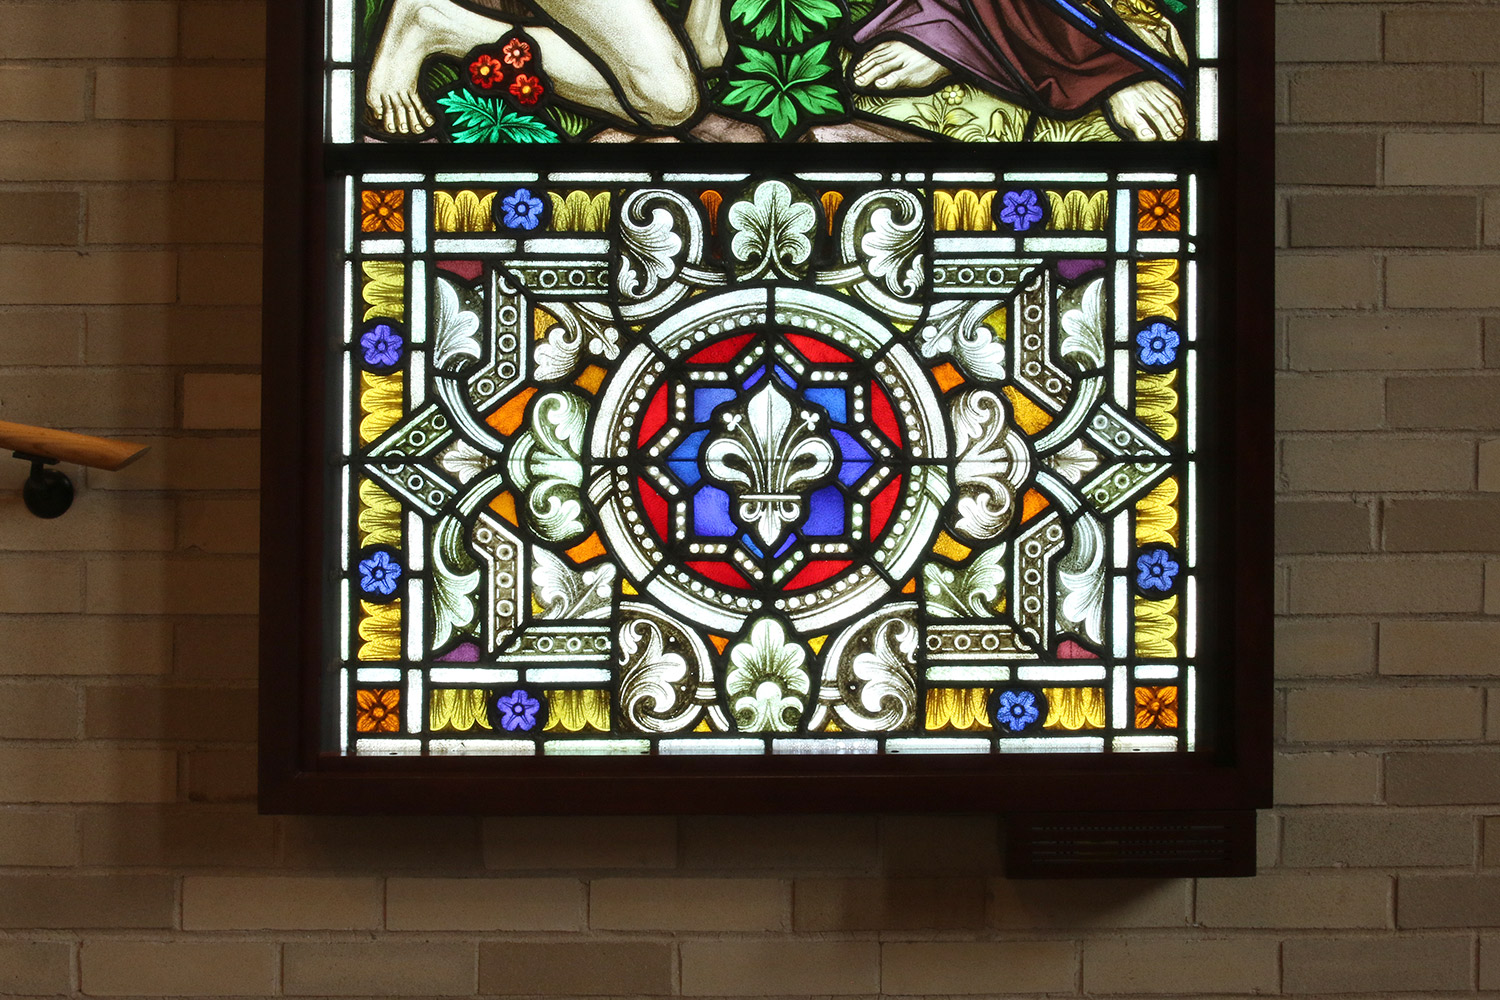 Stained glass window and hosting frame detail.